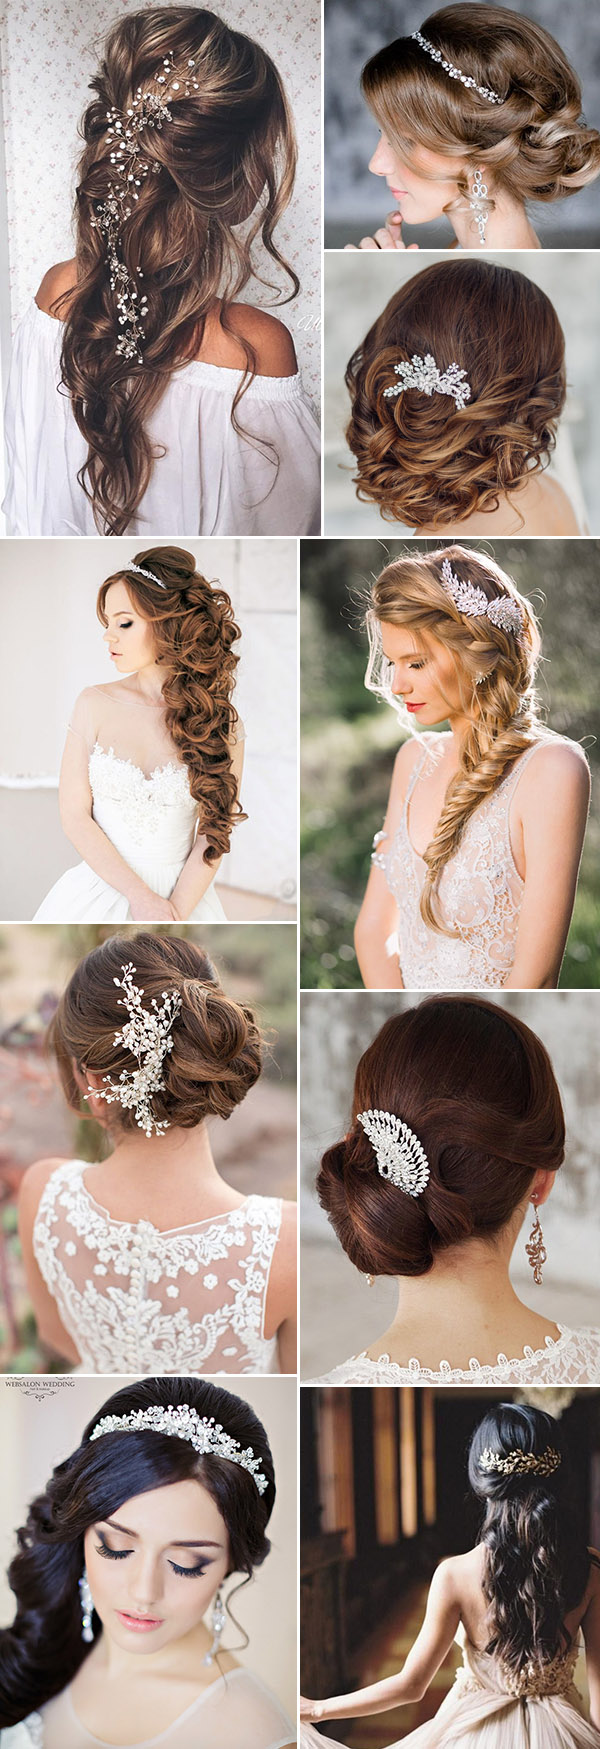 Vintage pearl bridal blog real brides news amp updates wedding - Gorgeous Wedding Hairstyles With Bridal Headpieces And Wedding Hair Accessories